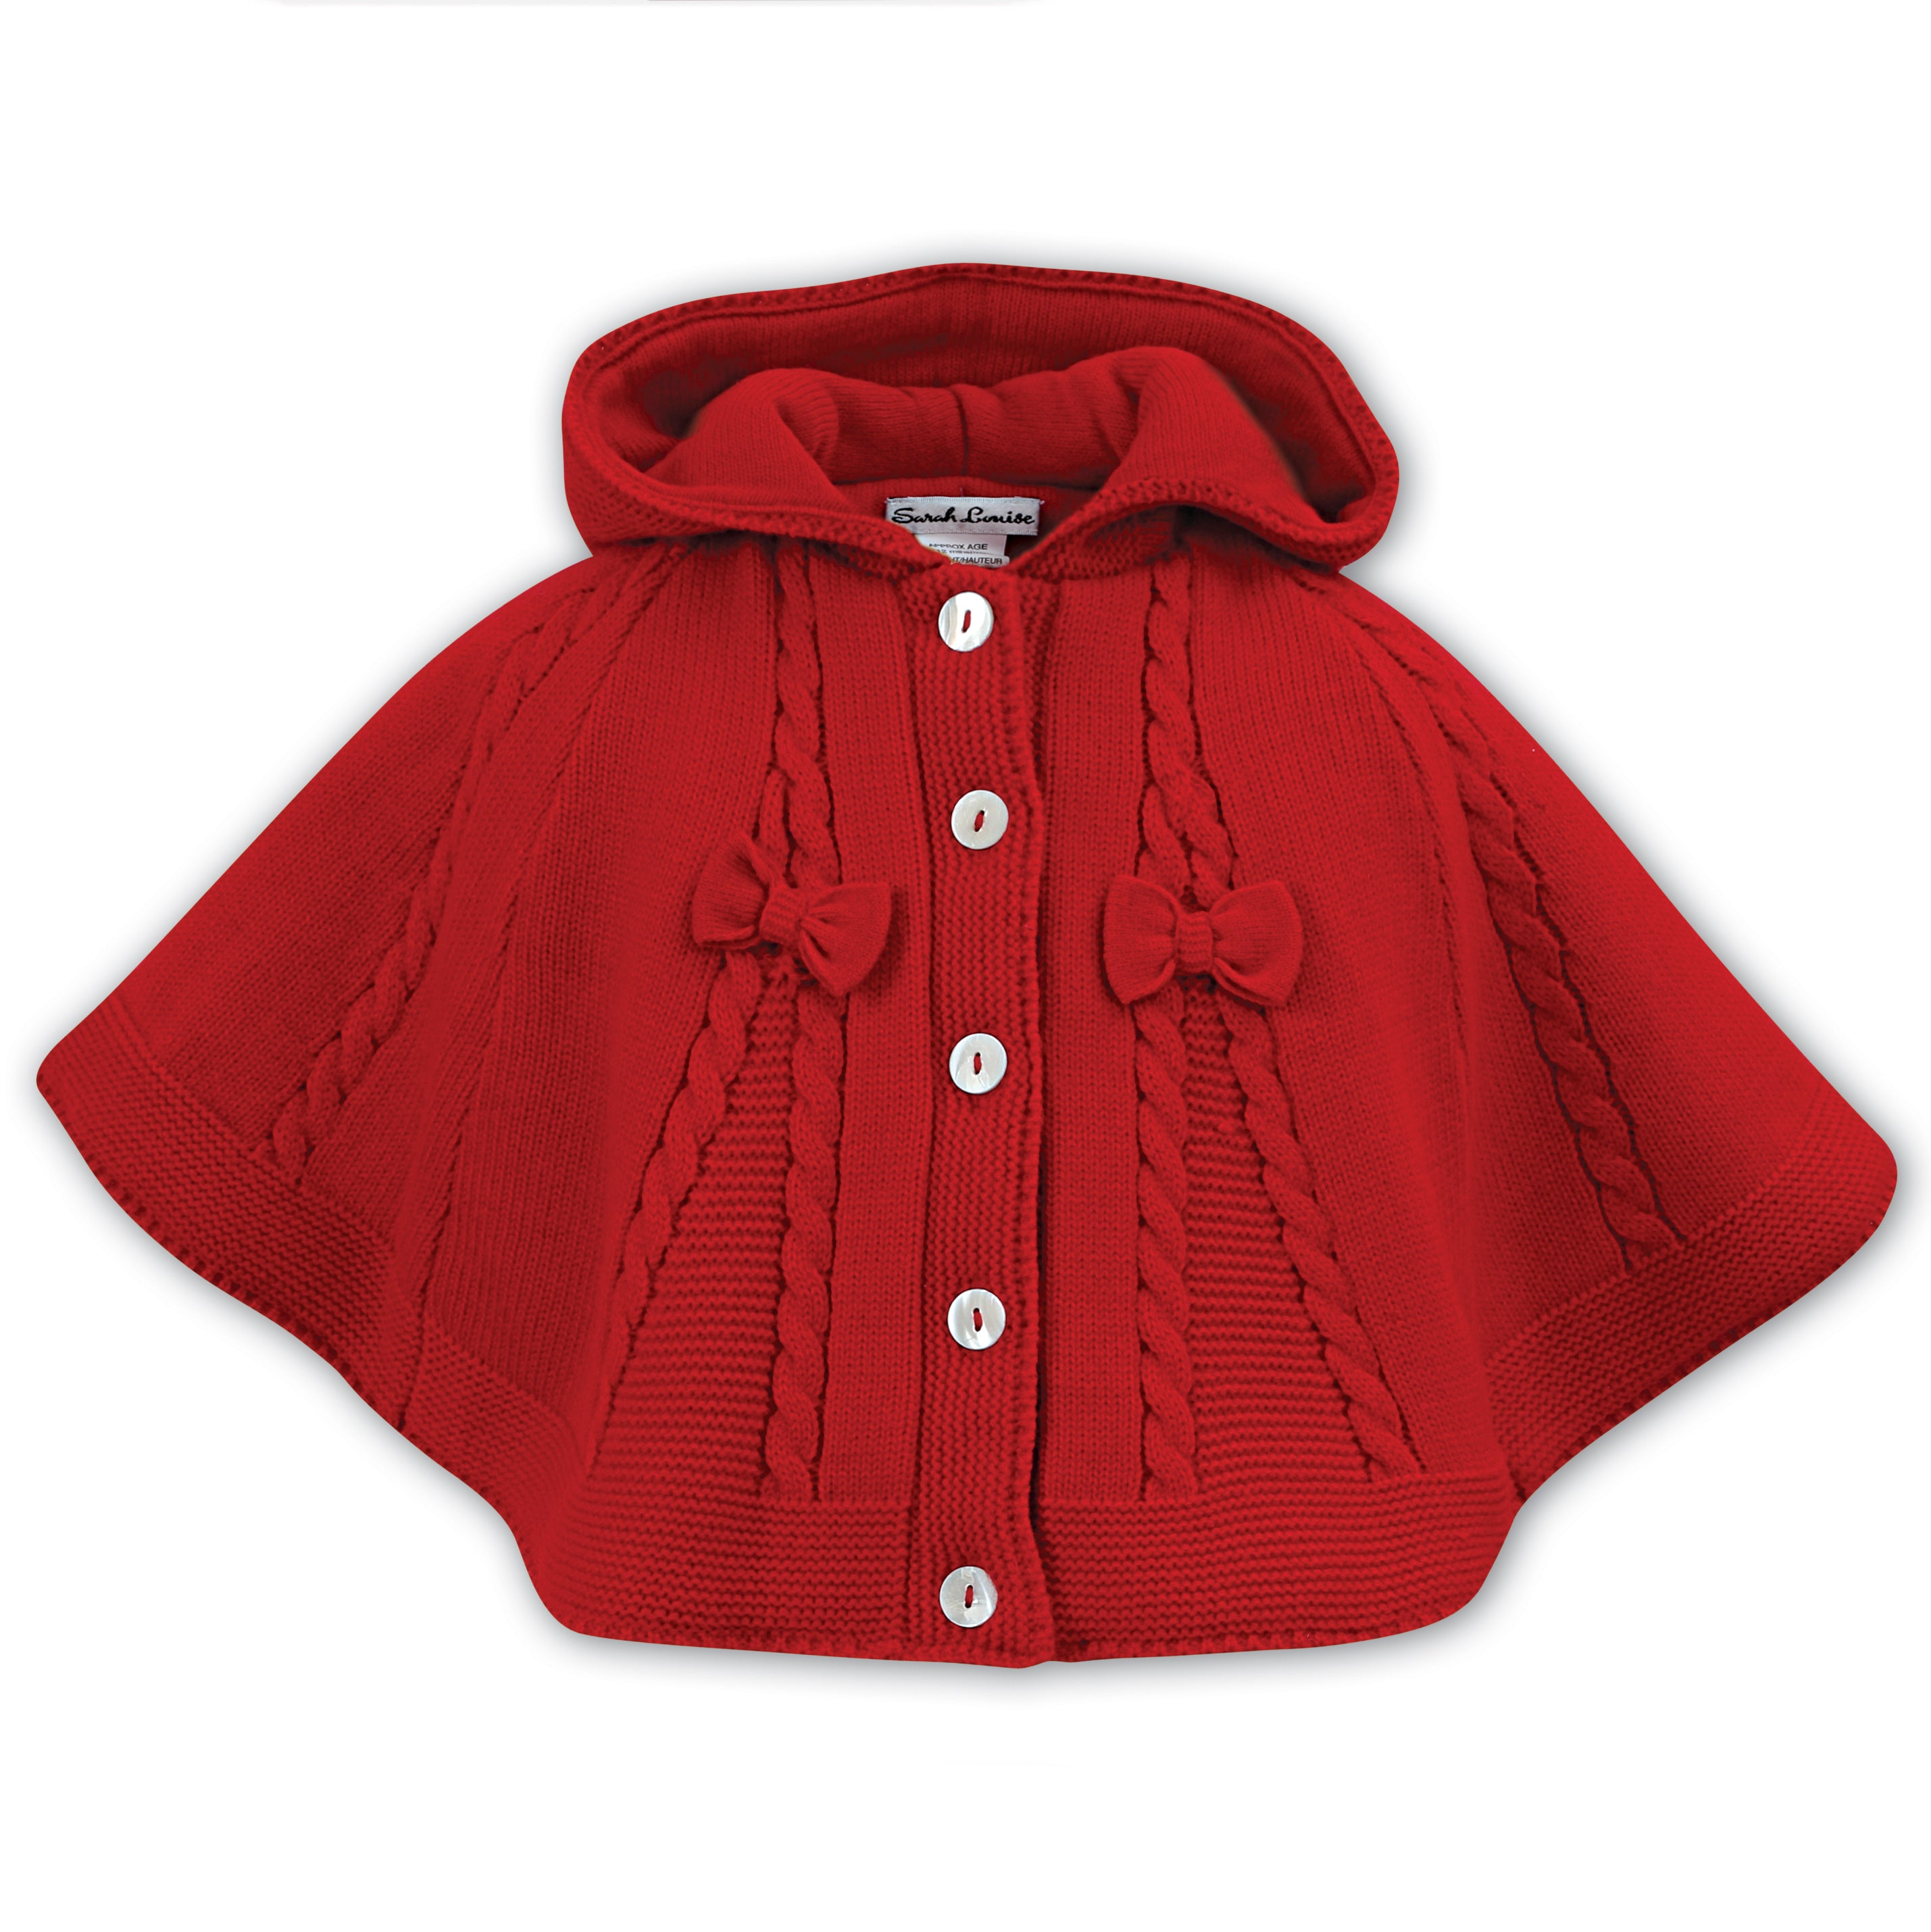 0b8fba79353e Sarah Louise Girls Red Knitted Cape